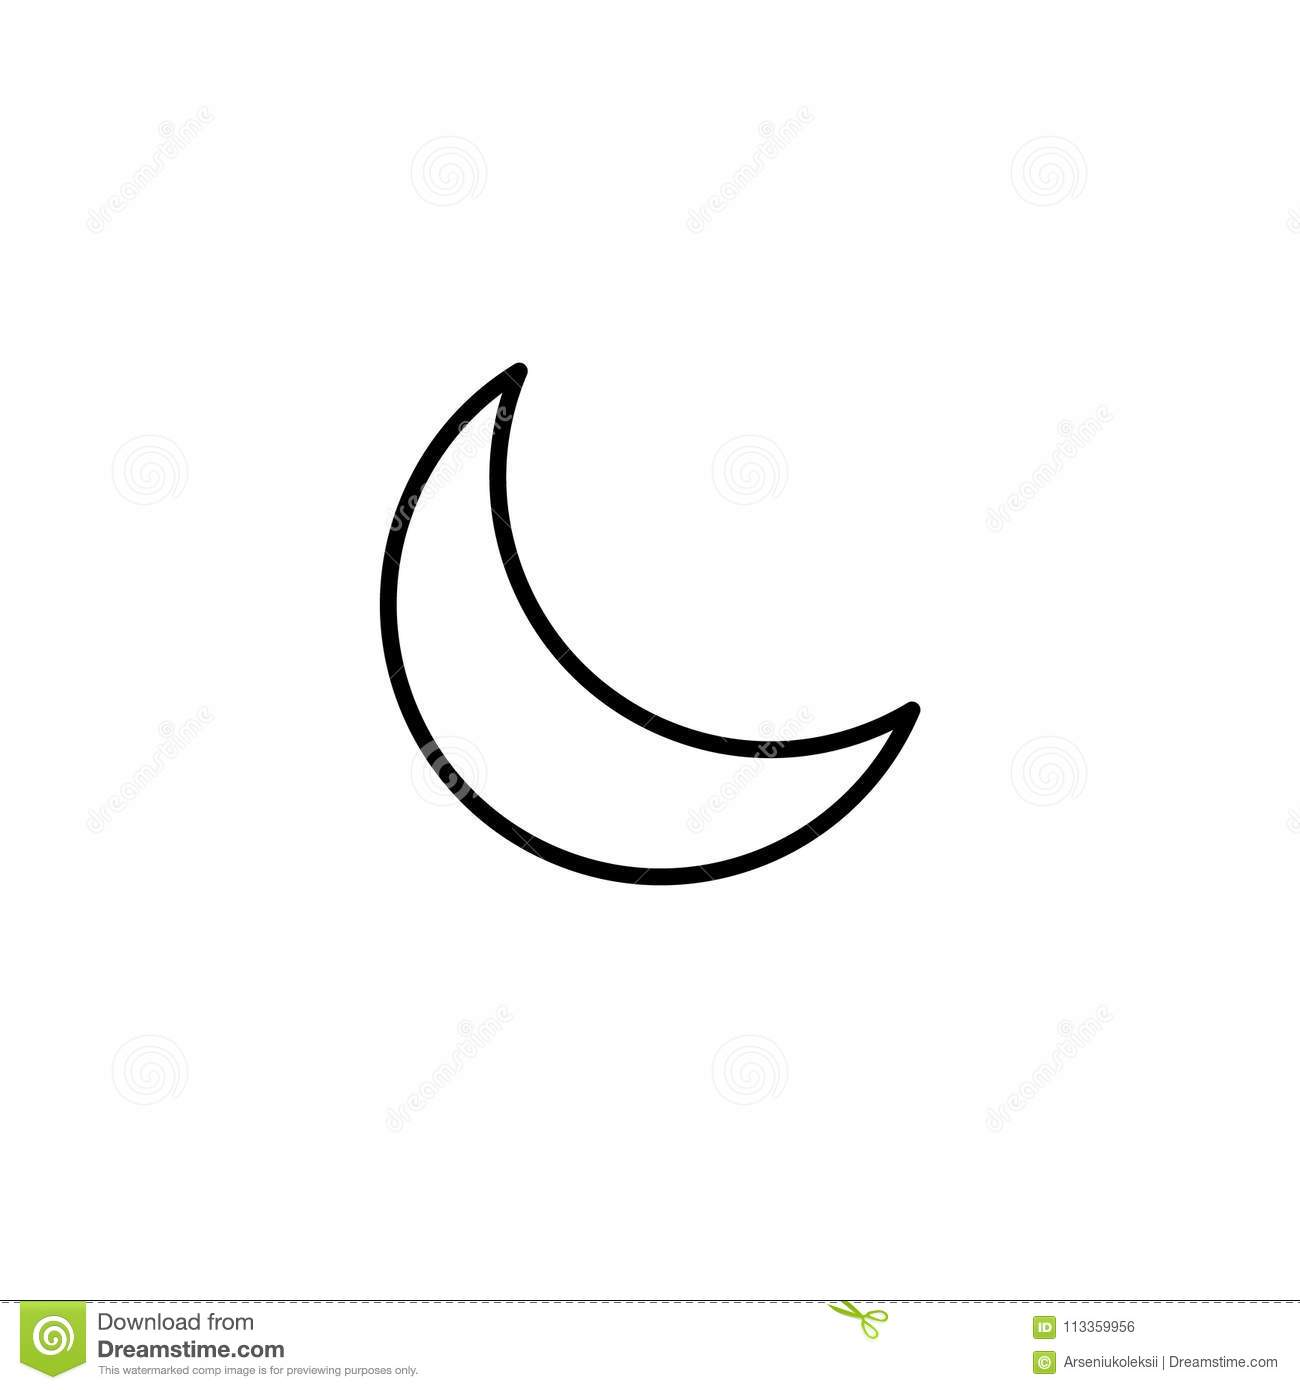 simple crescent moon line icon stock vector illustration of climate crescent 113359956 https www dreamstime com simple crescent moon line icon isolated white background simple crescent moon line icon image113359956